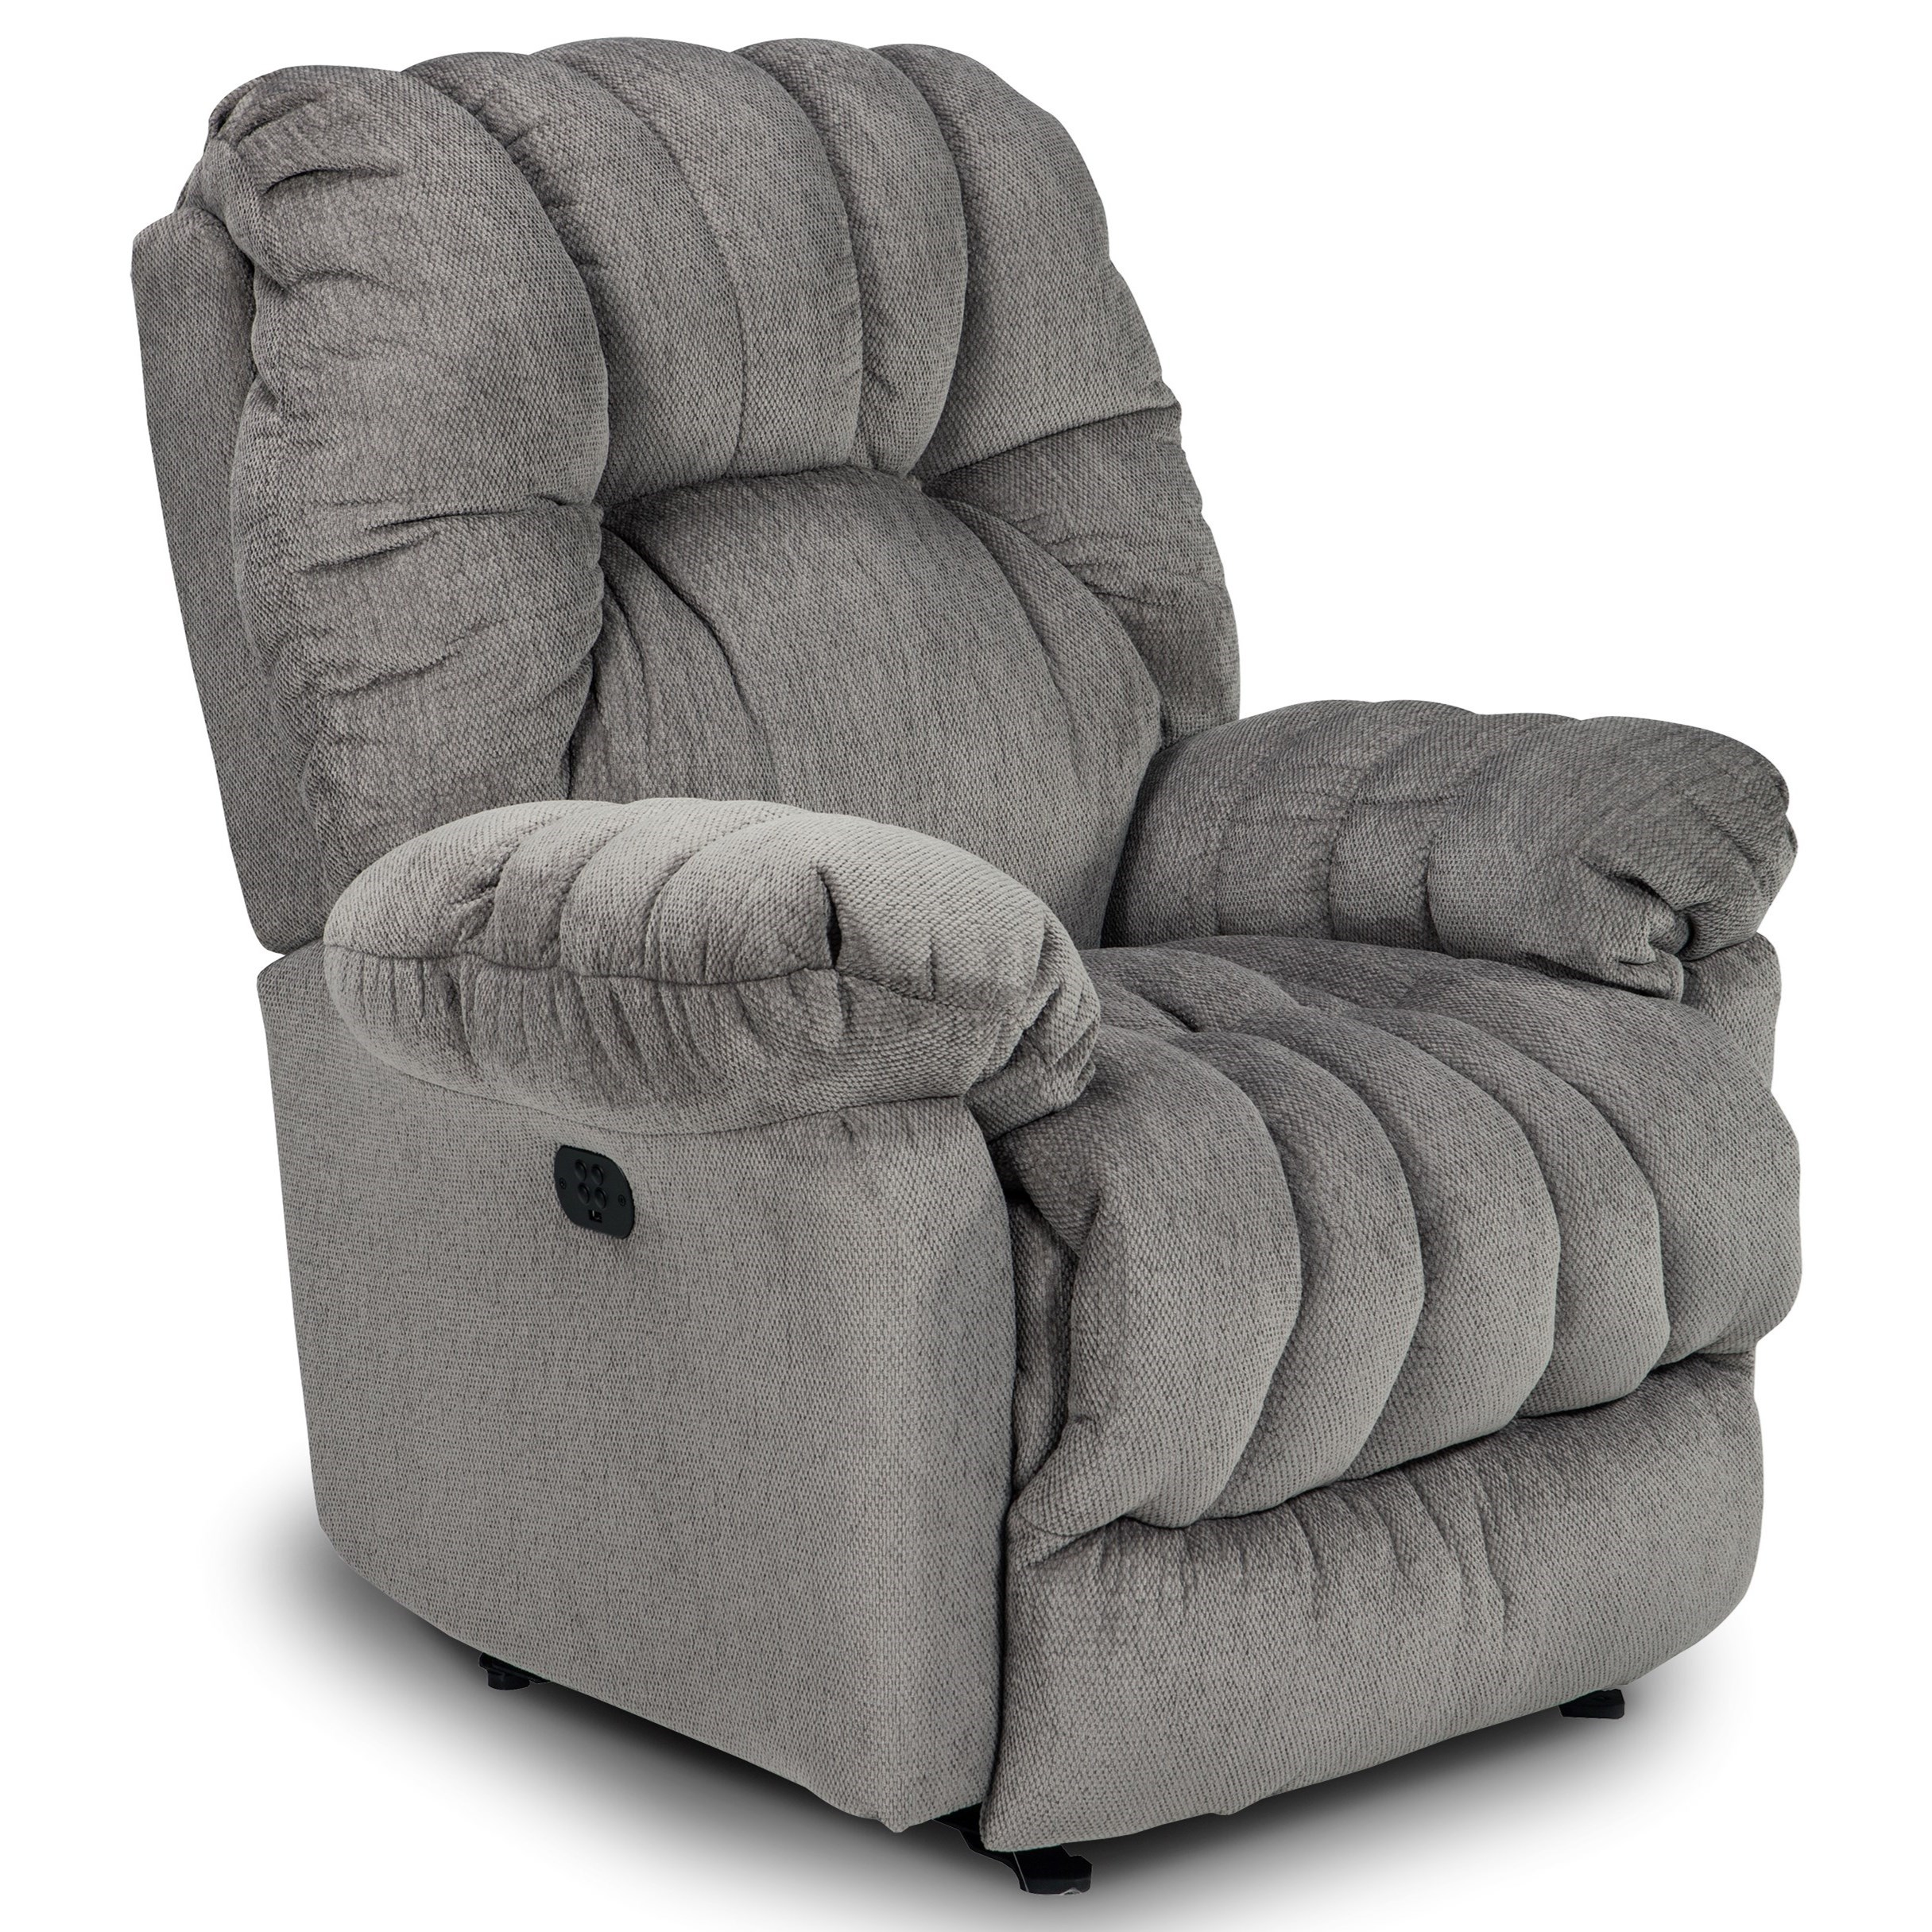 Conen Power Rocker Recliner by Best Home Furnishings at Baer's Furniture